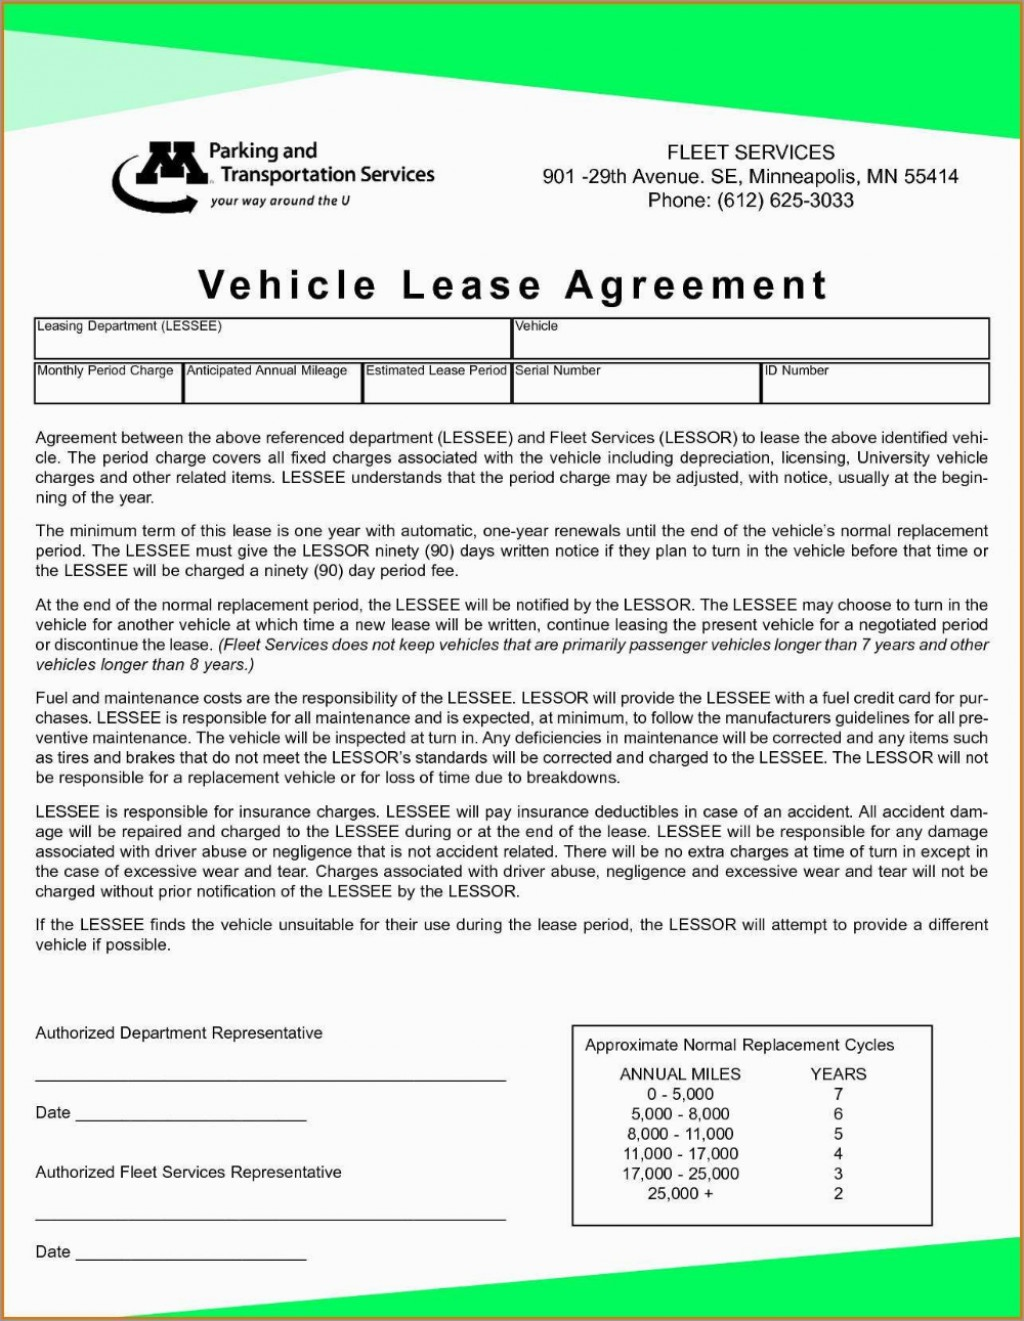 001 Marvelou Car Rental Agreement Template Highest Clarity  Vehicle Rent To Own South Africa SingaporeLarge